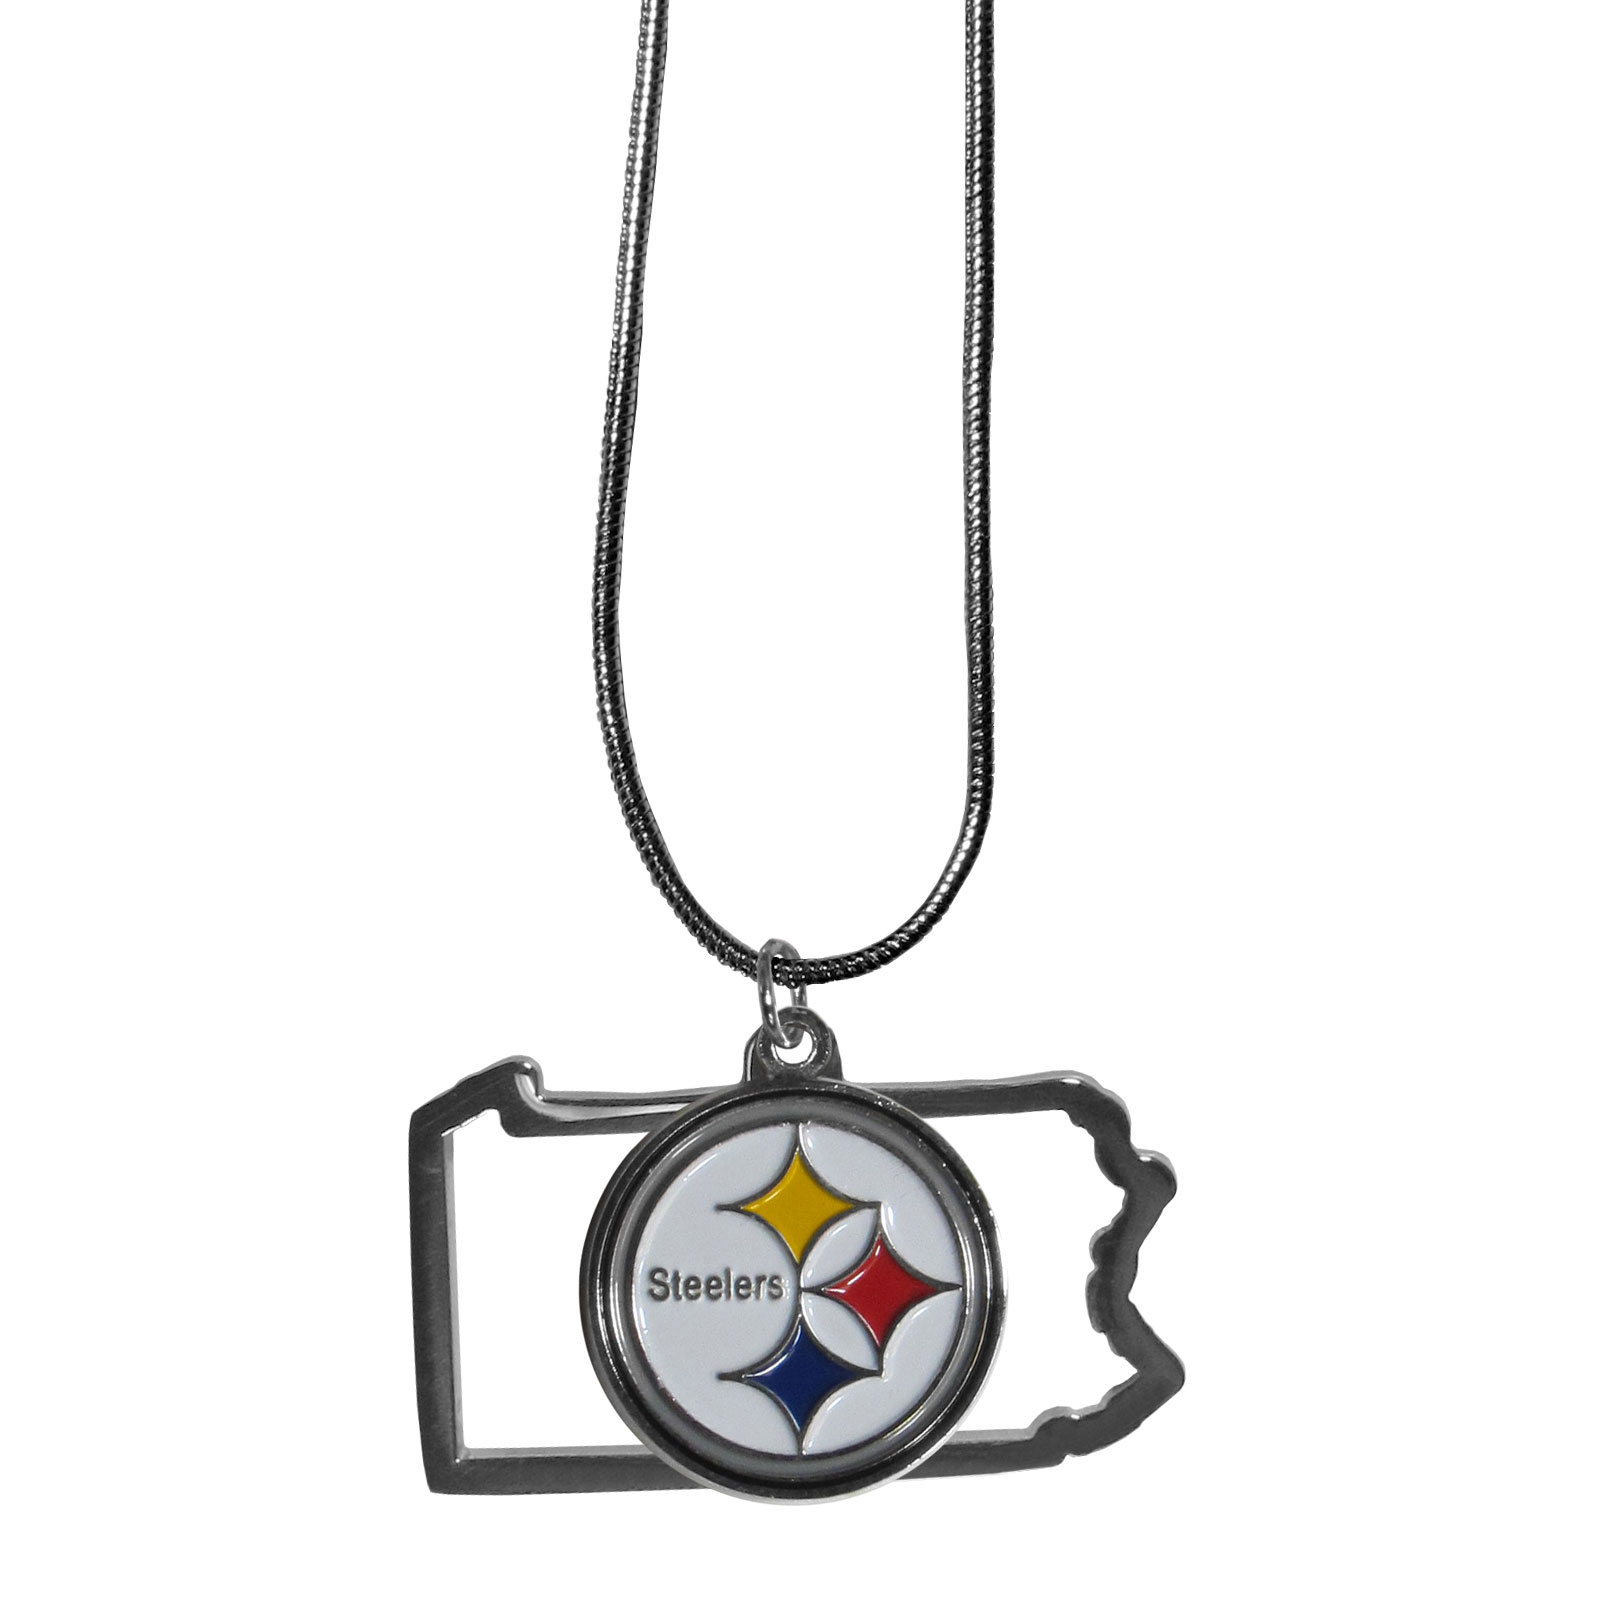 Pittsburgh Steelers State Charm Necklace - Get in on the trend! State themes are a trend that just keeps getting more popular and these necklaces take the state style and give it a sporty twist with a Pittsburgh Steelers added to the state outline charm. The come on a snake chain that is 22 inches long.